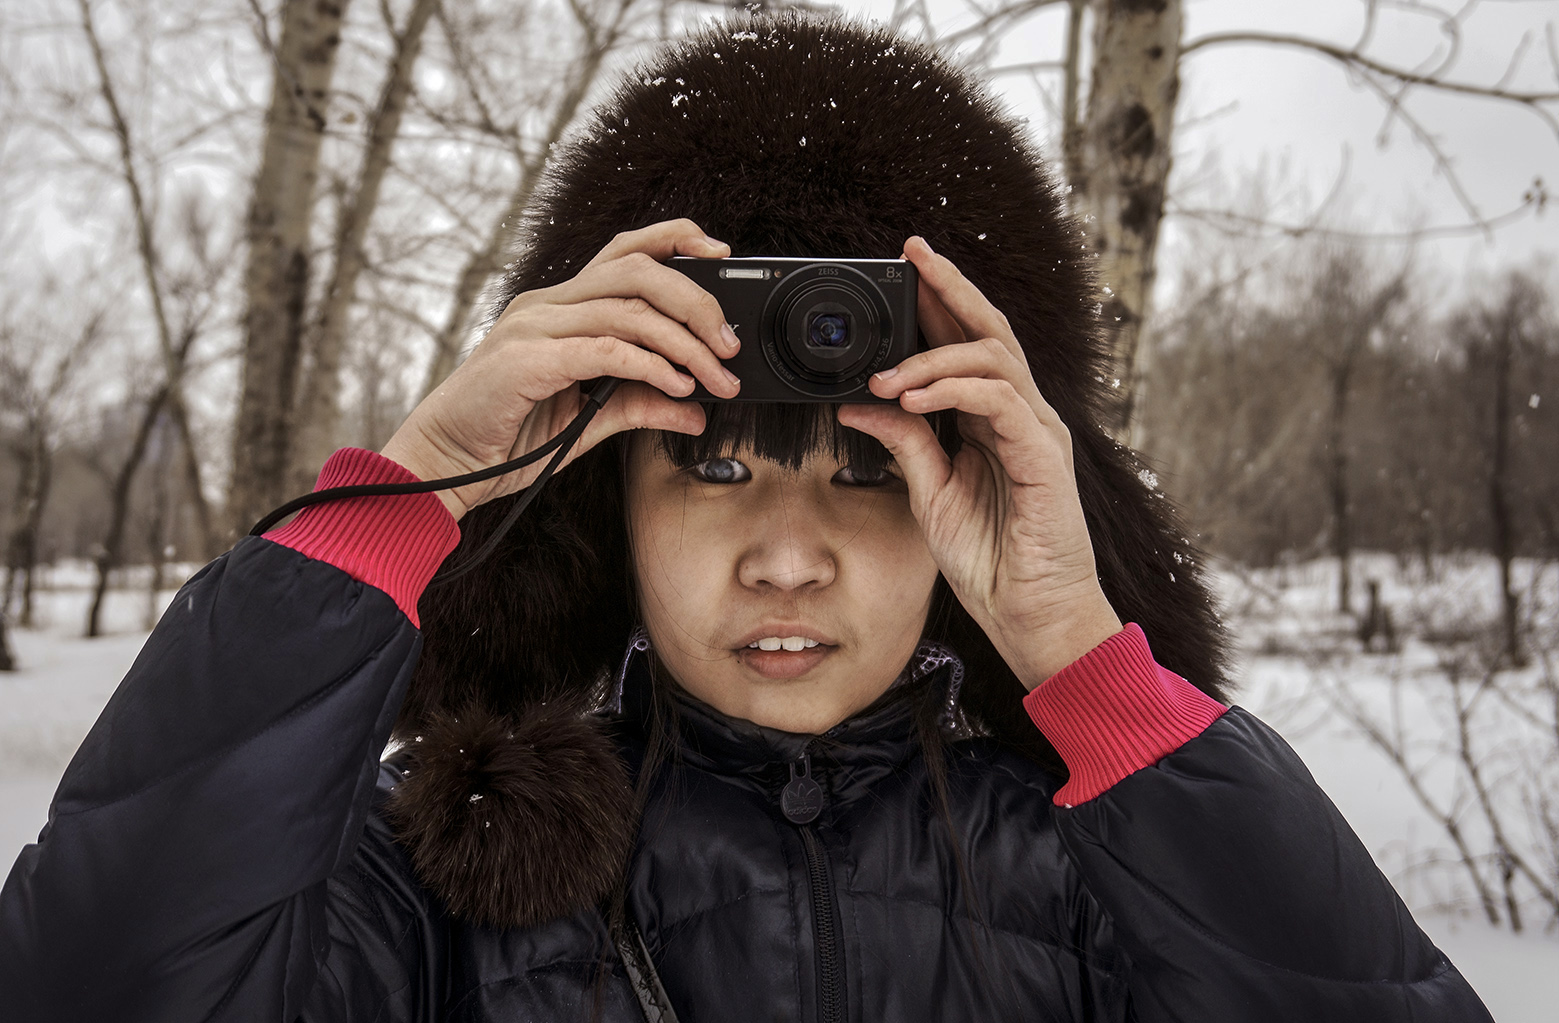 Nurshat, blindes Mädchen, Workshop in Karaganda (Kasachstan), 2017.